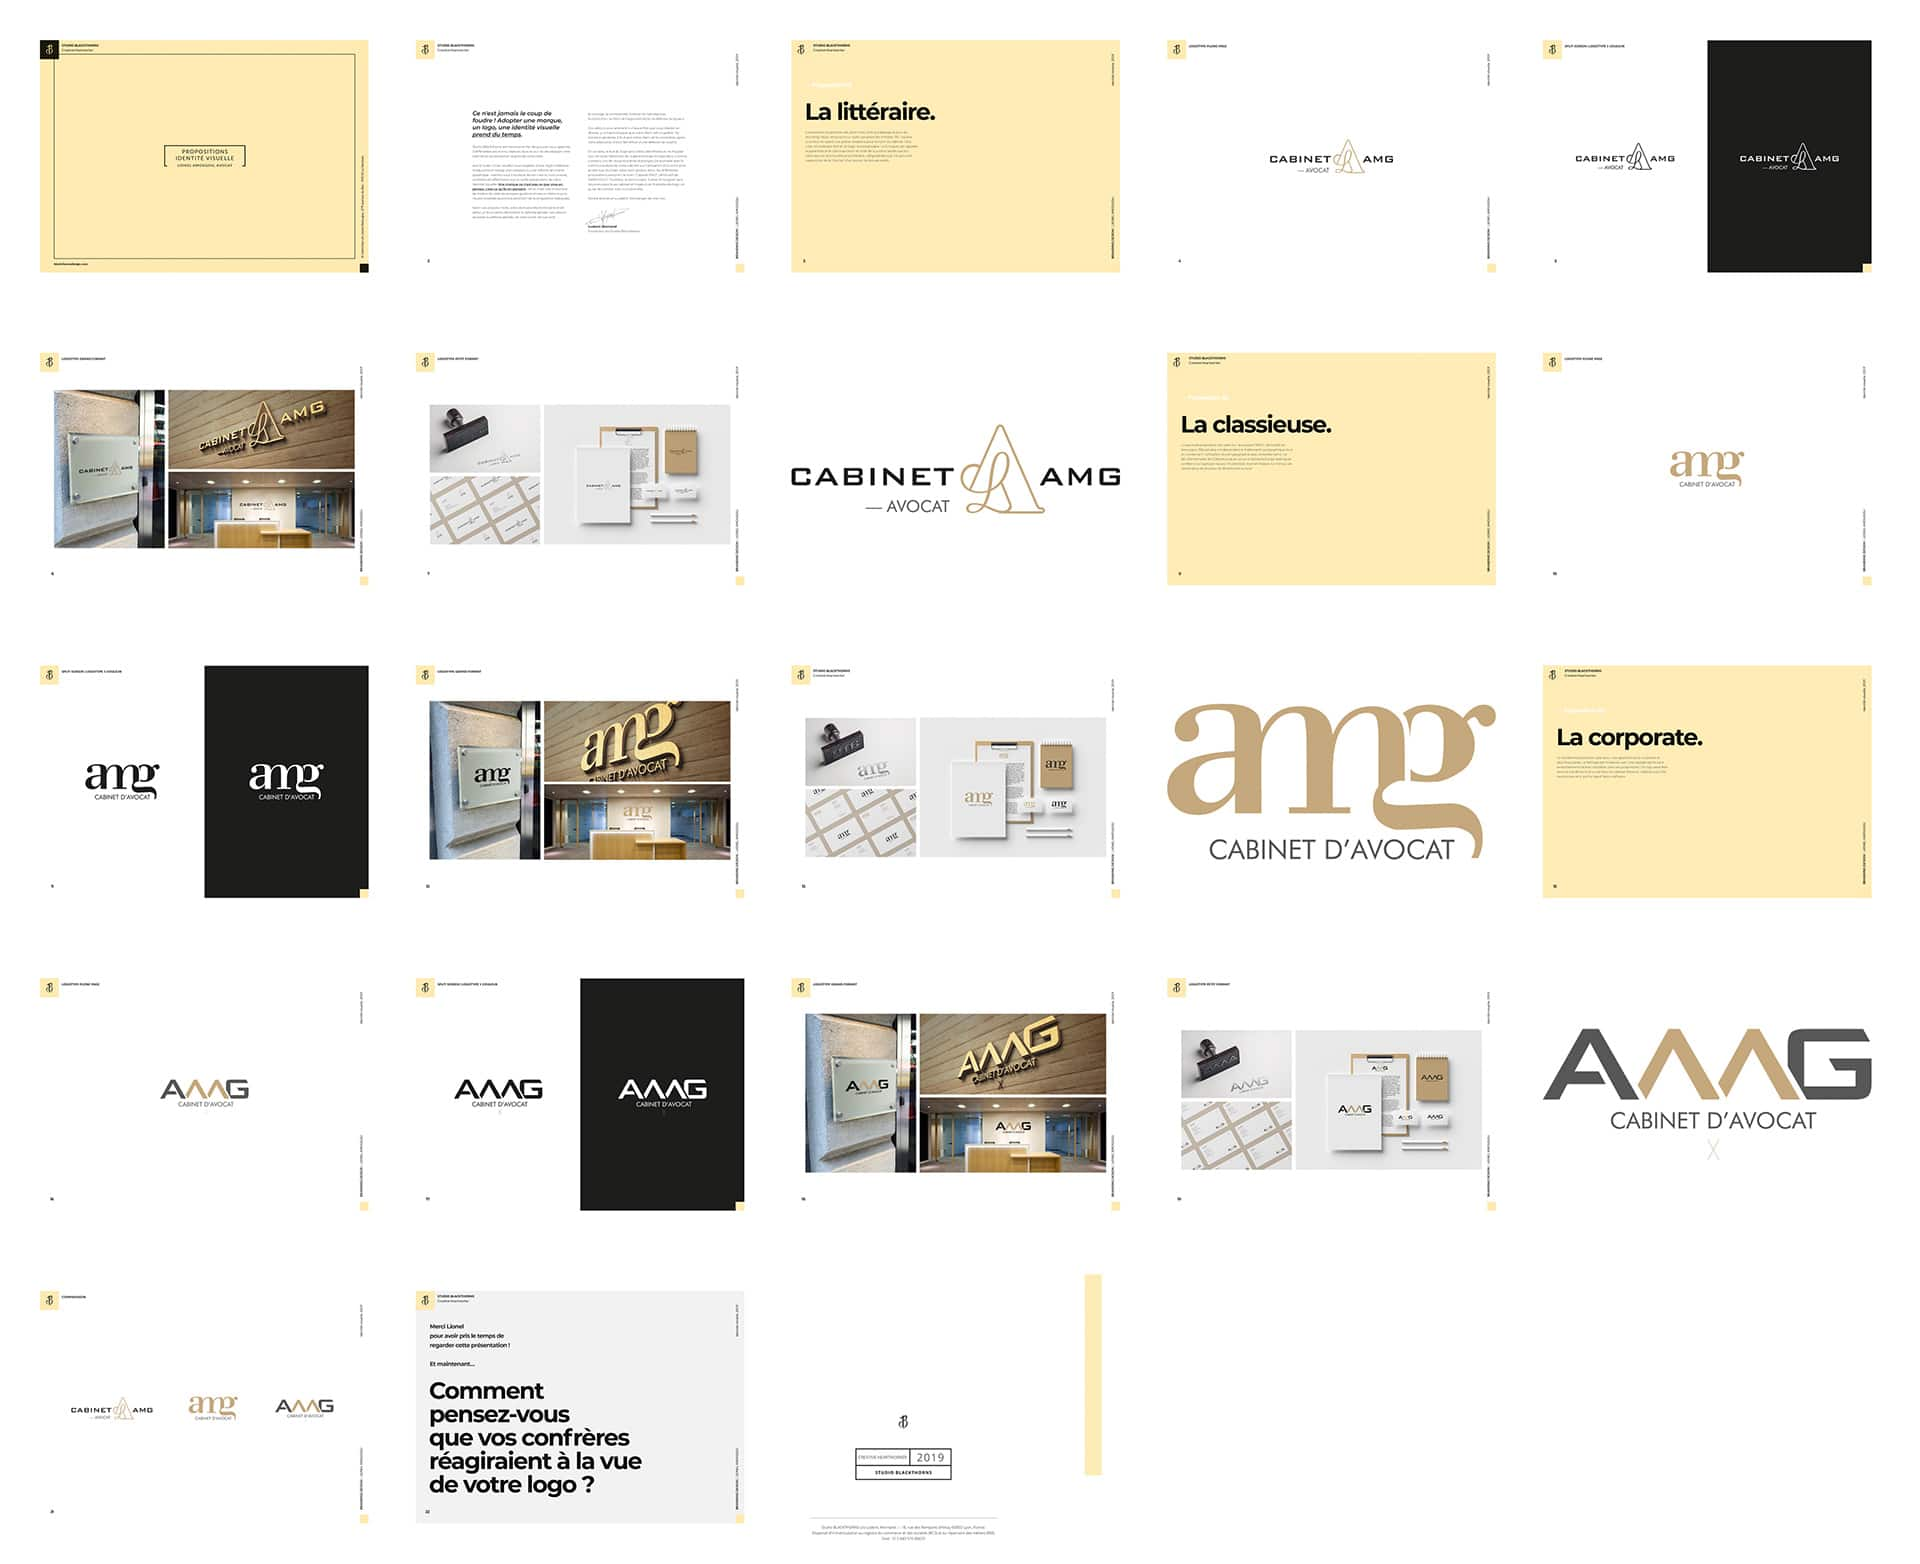 Strategic plan for AMG's visual identity